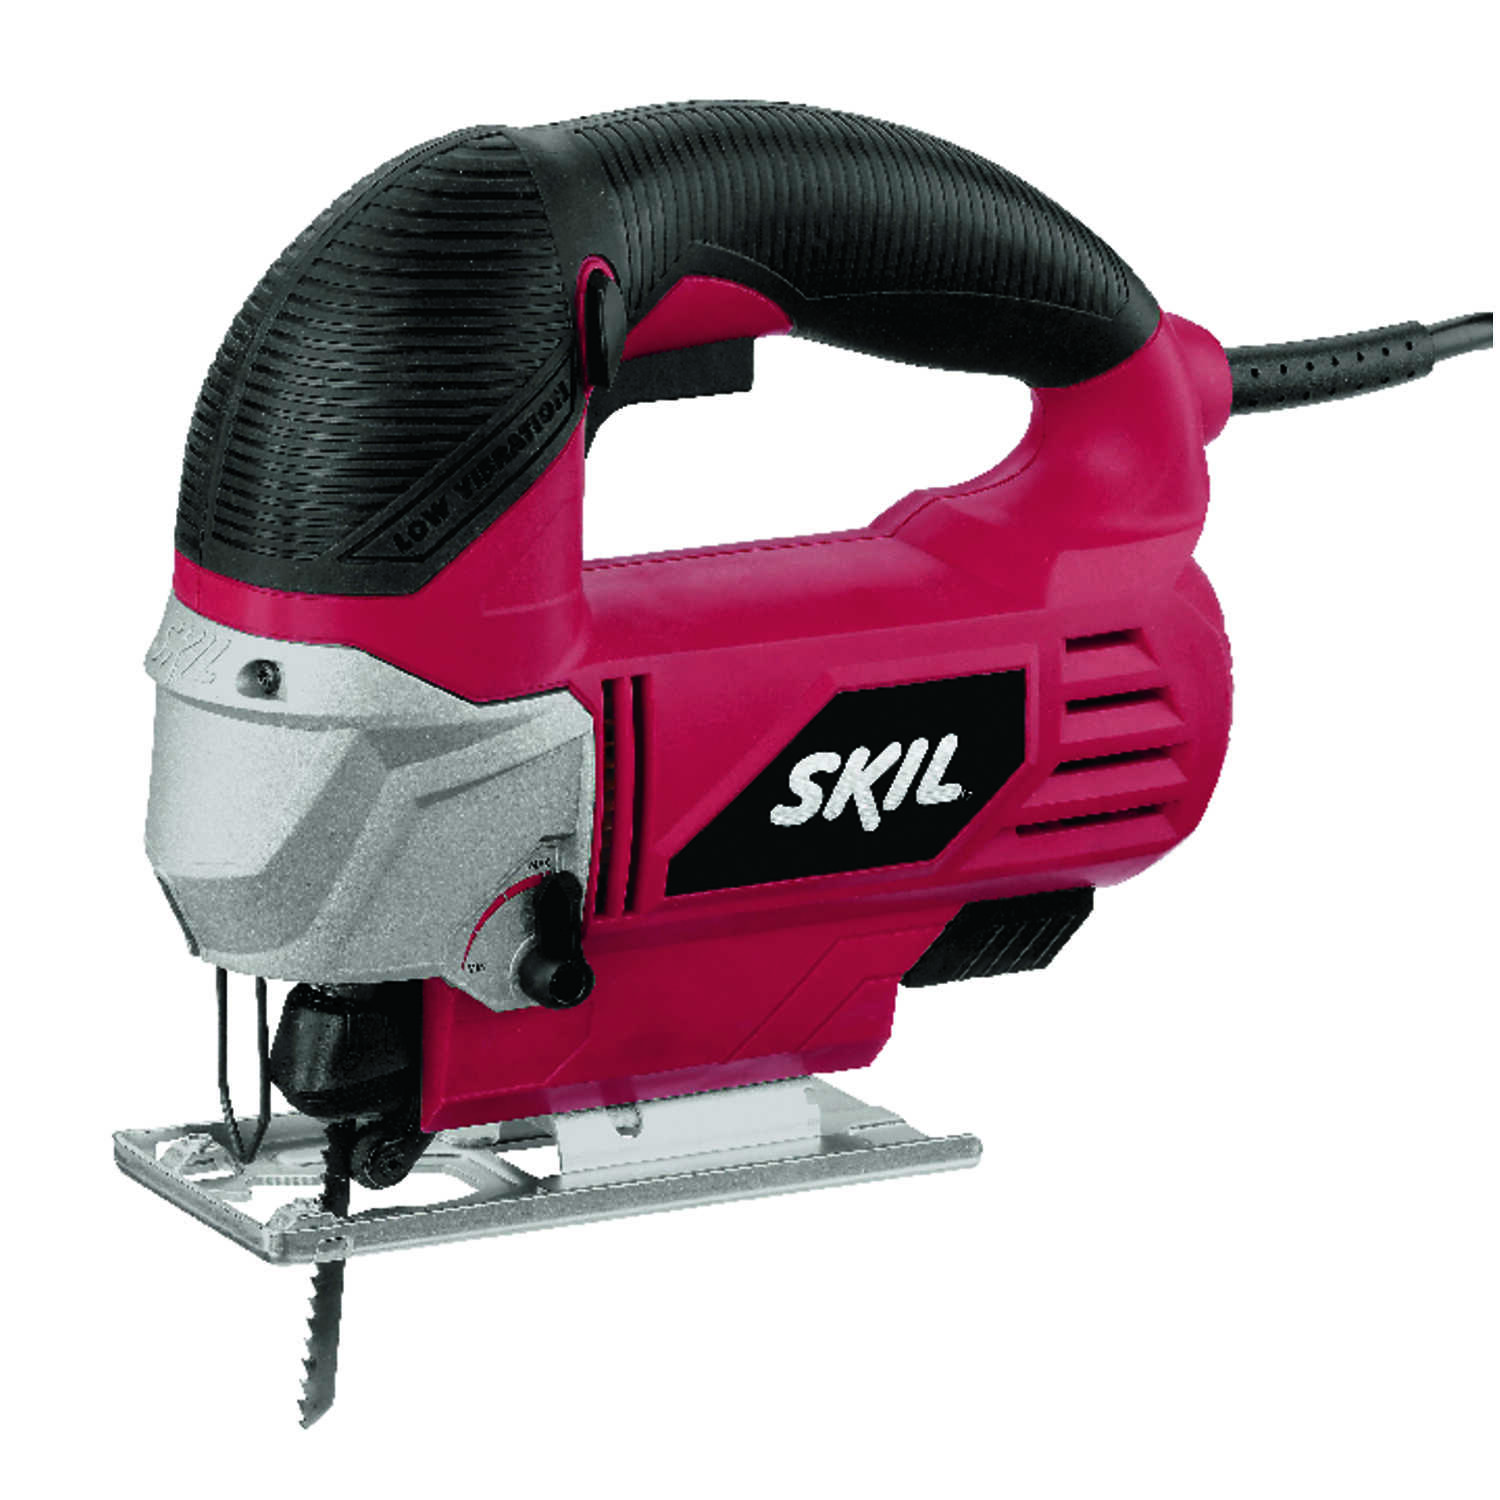 Skil  3/4 in. Corded  Keyless Orbital Jig Saw  Kit 120 volt 5.5 amps 3200 spm